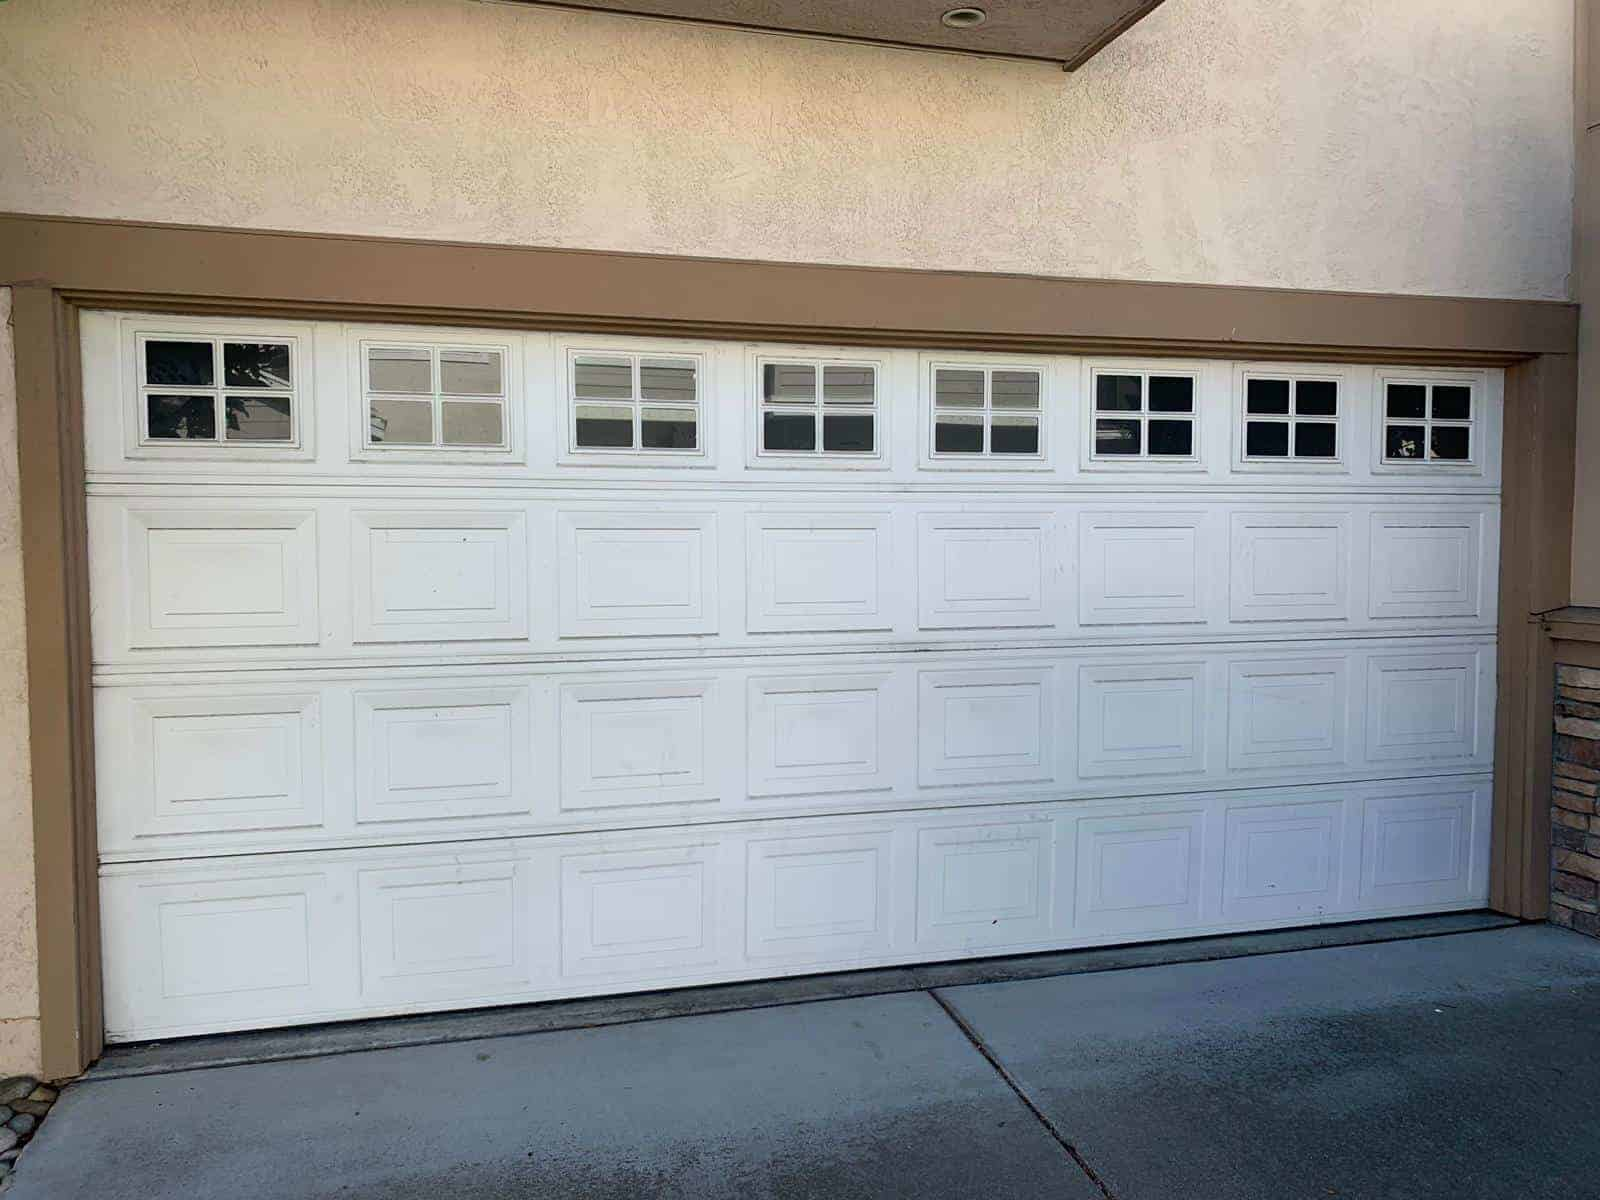 Rio Linda CA Garage Door Repair & Replacement